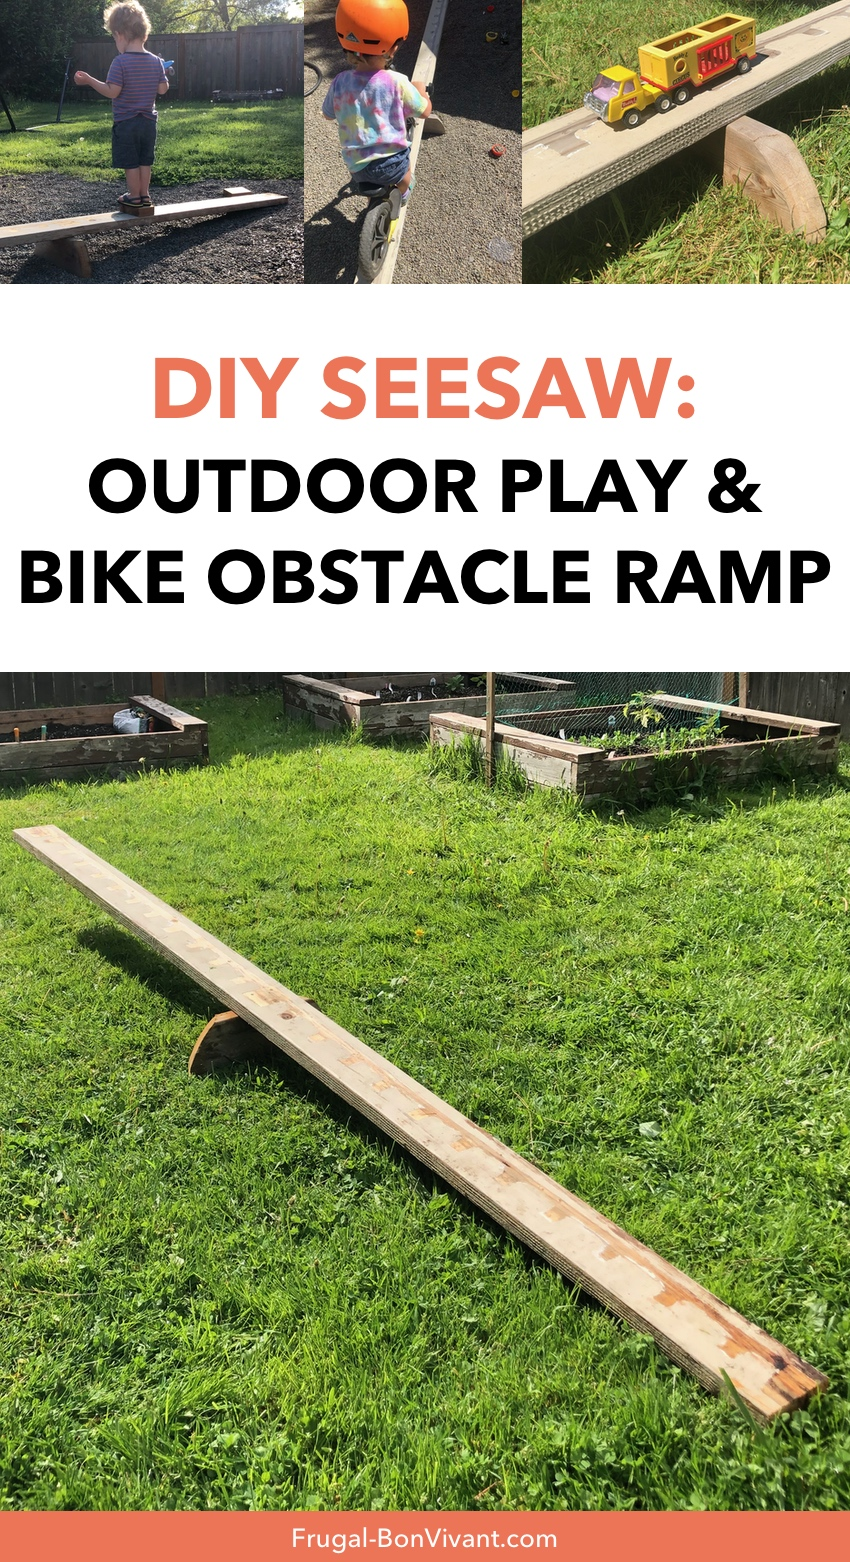 DIY Seesaw Bike Obstacle Ramp